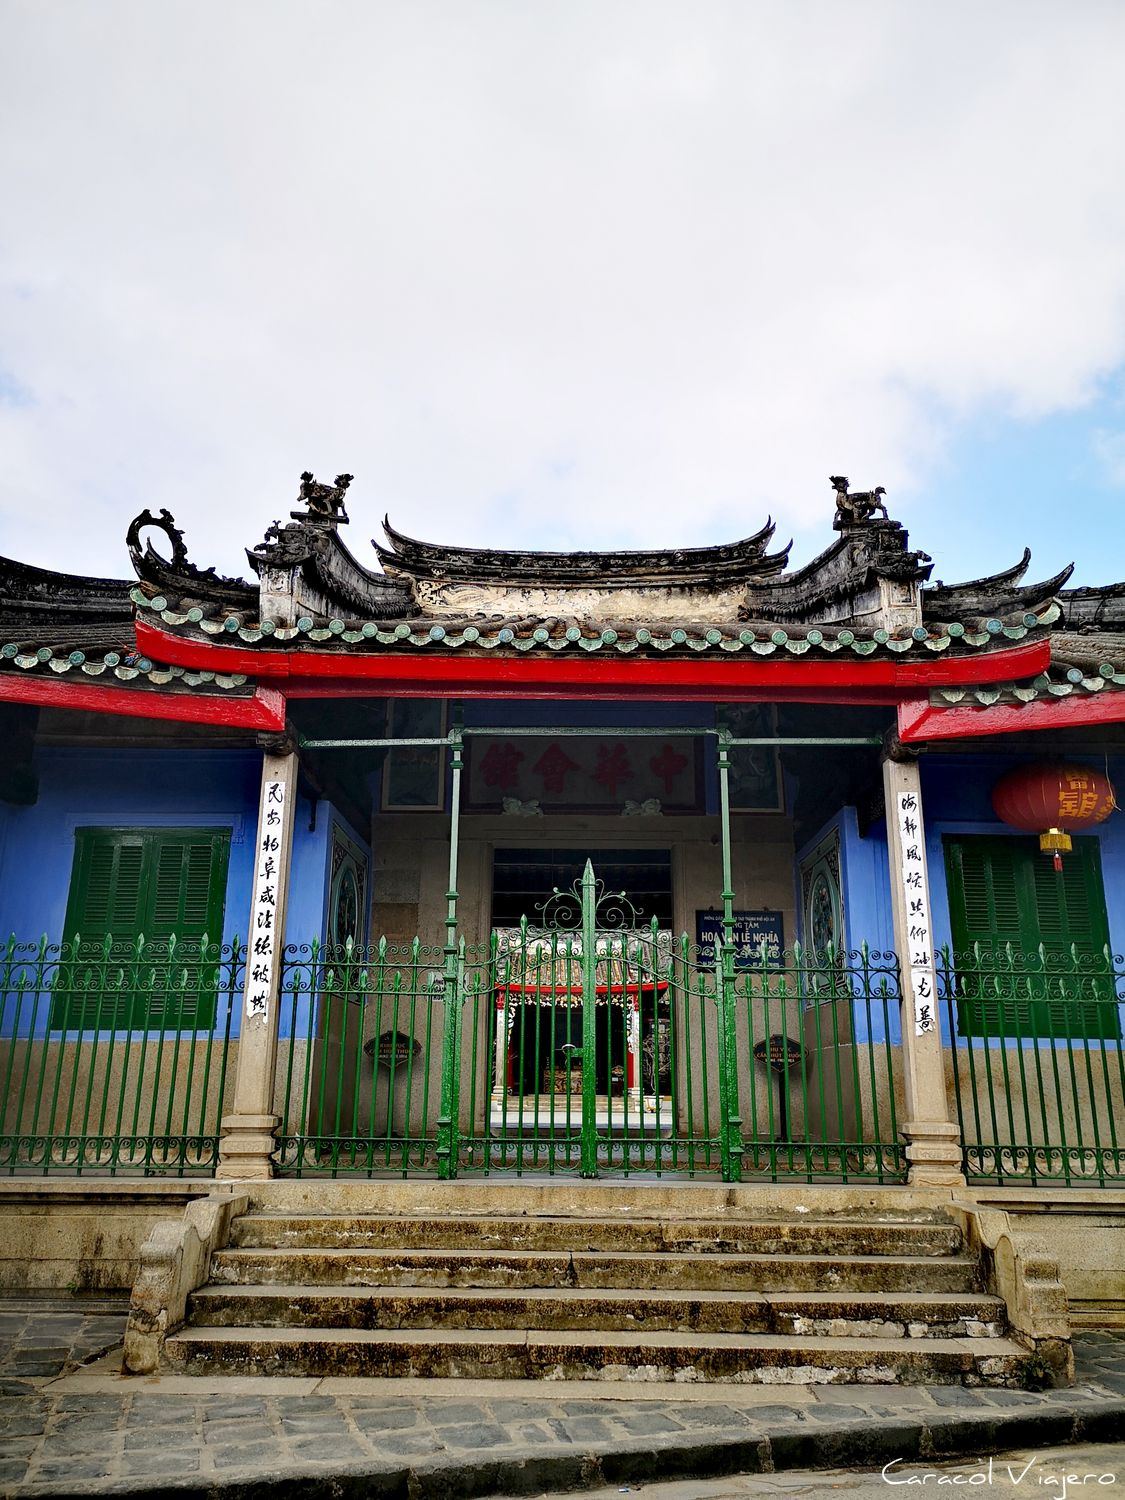 Assembly Chinese Hall